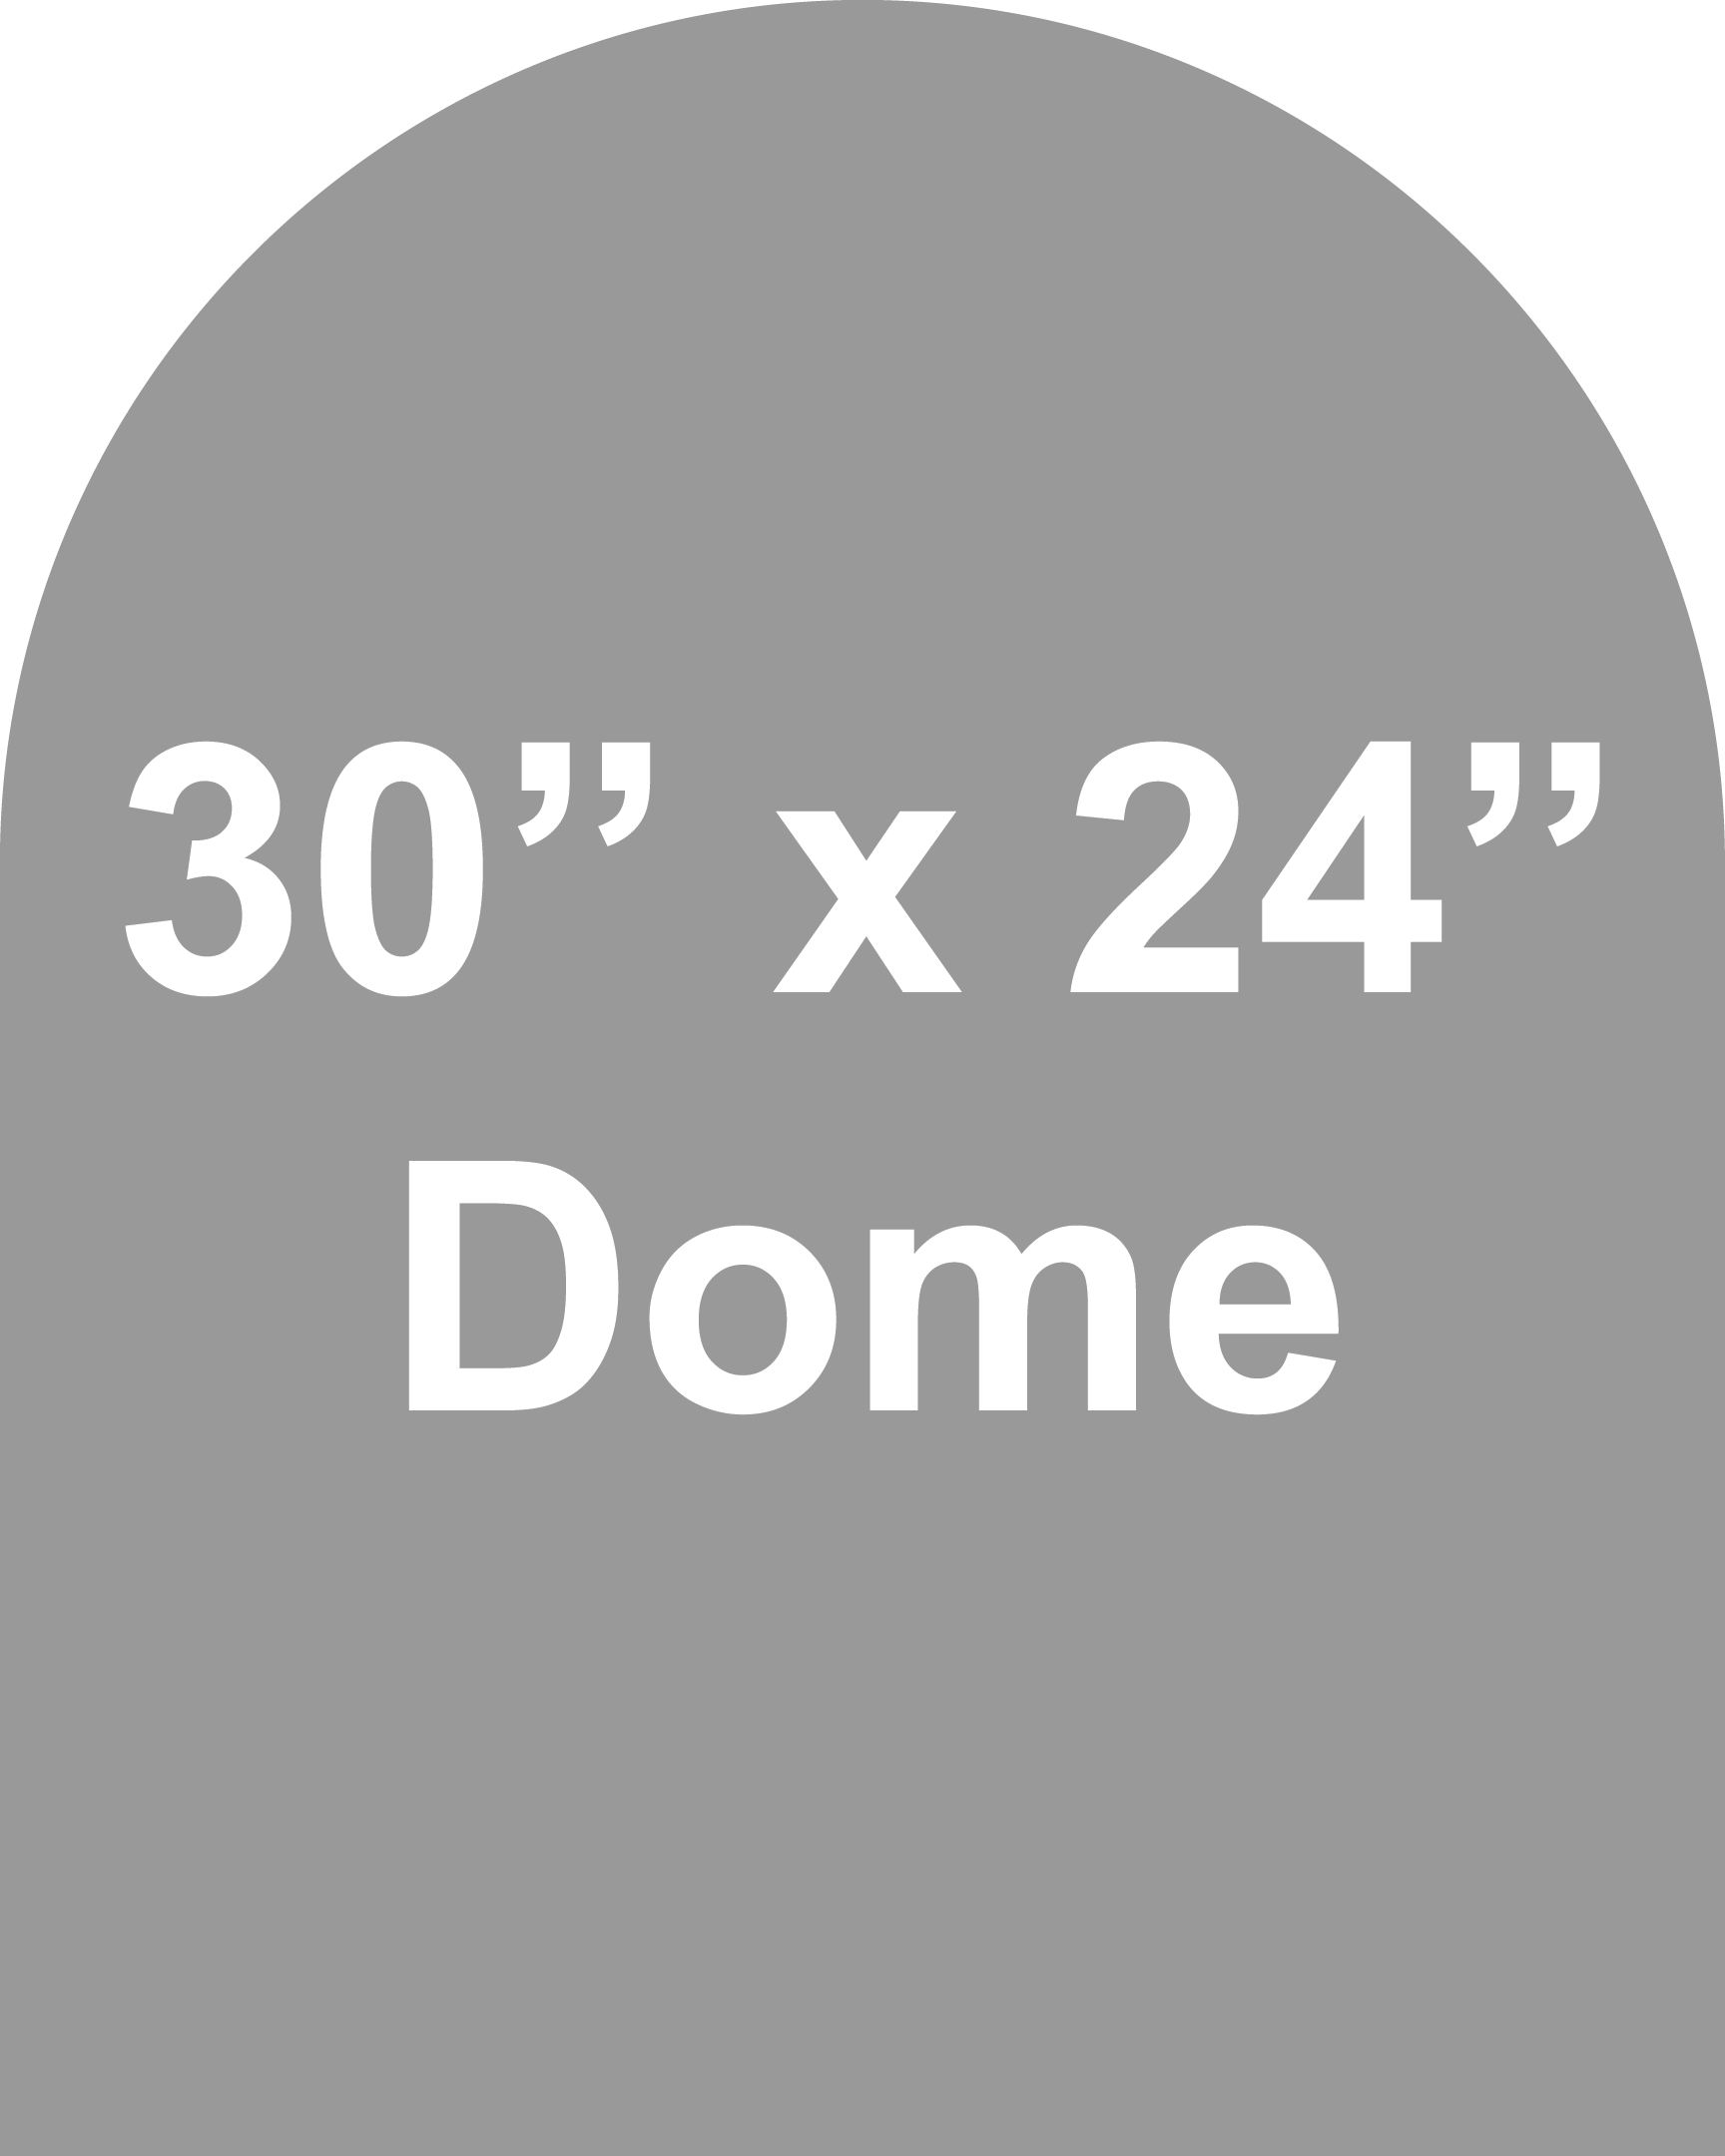 3024-Dome-guidelines